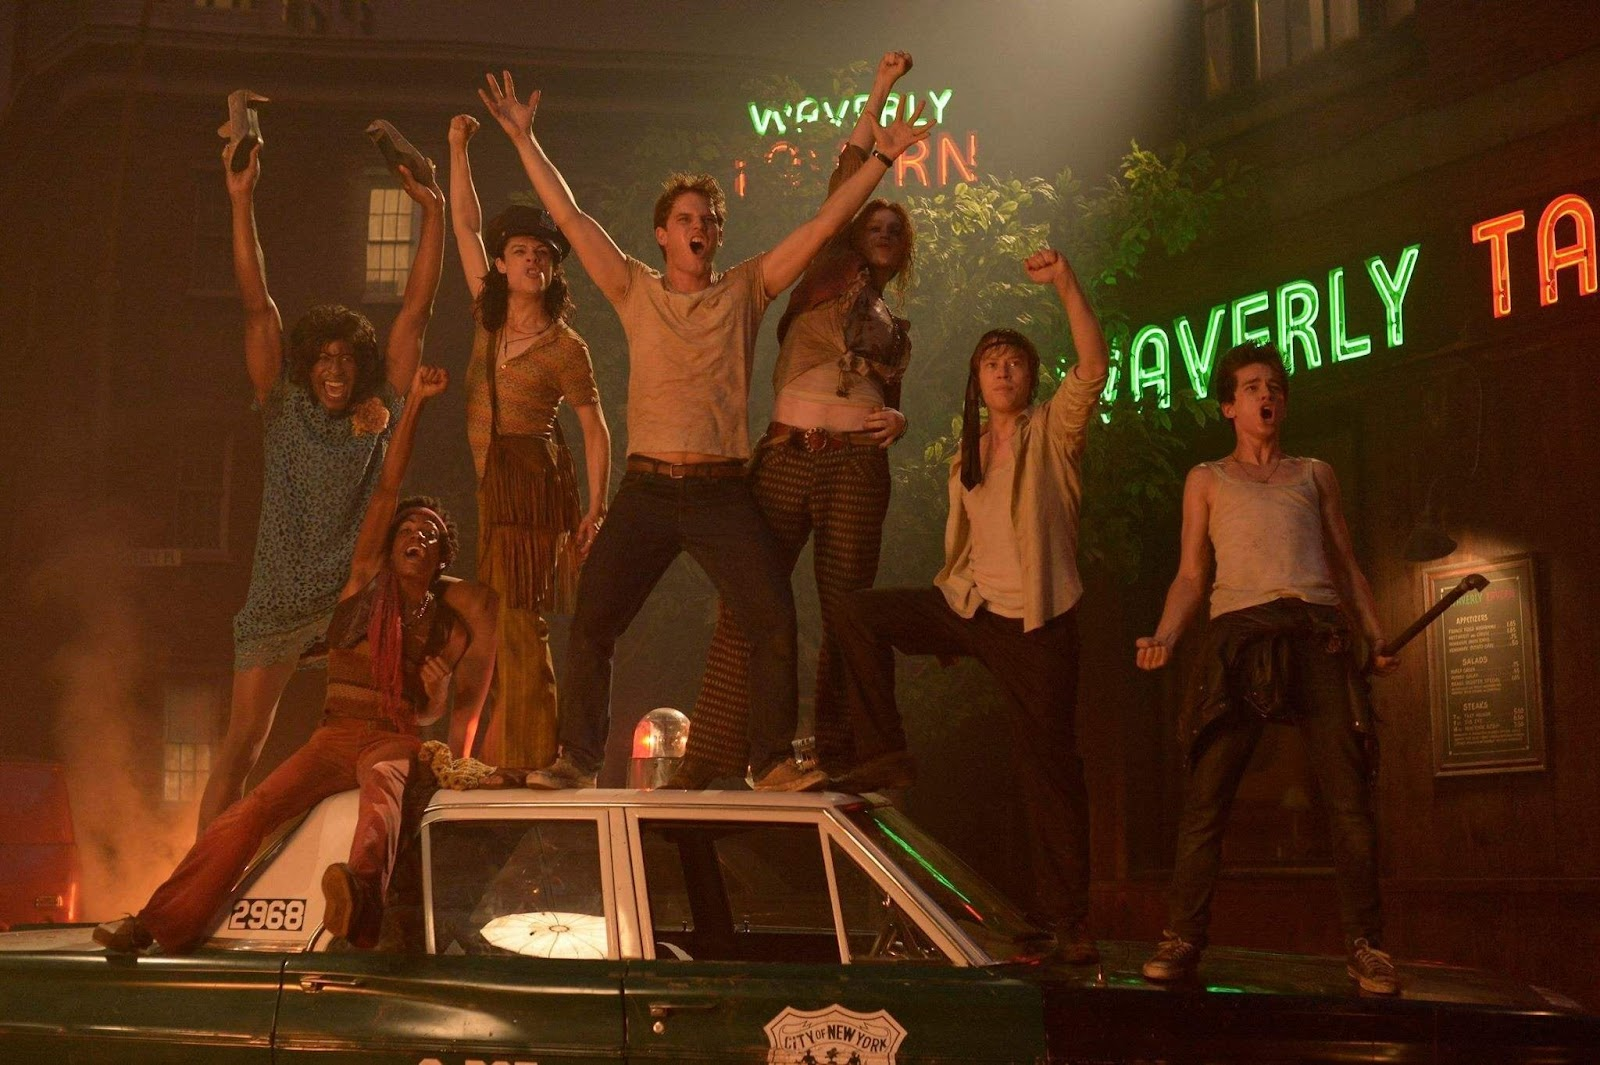 Still from Stonewall (2015). A gang of seven young people stand on top of an empty police car on a darkened street, raising their fists in the air. A fire is burning behind them.